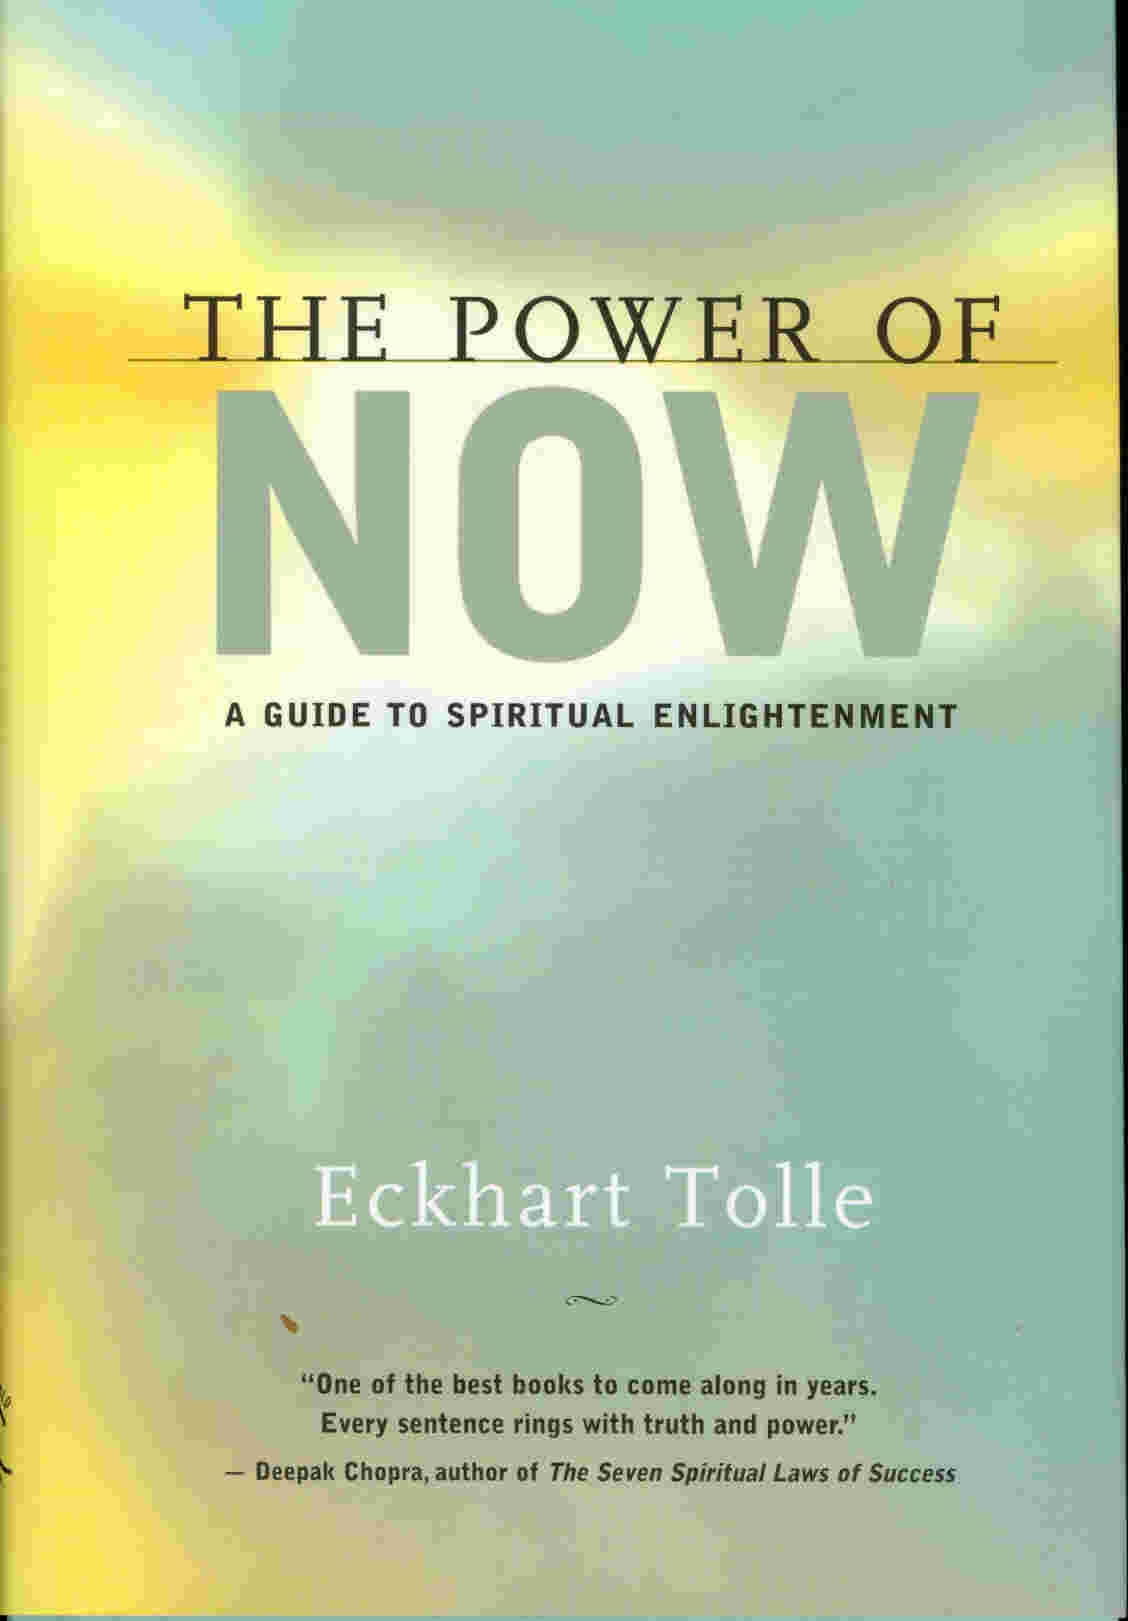 The Power Of Now Quotes Yvette's Blog The Power Of Now Ch.2 Consciousness Ego And My